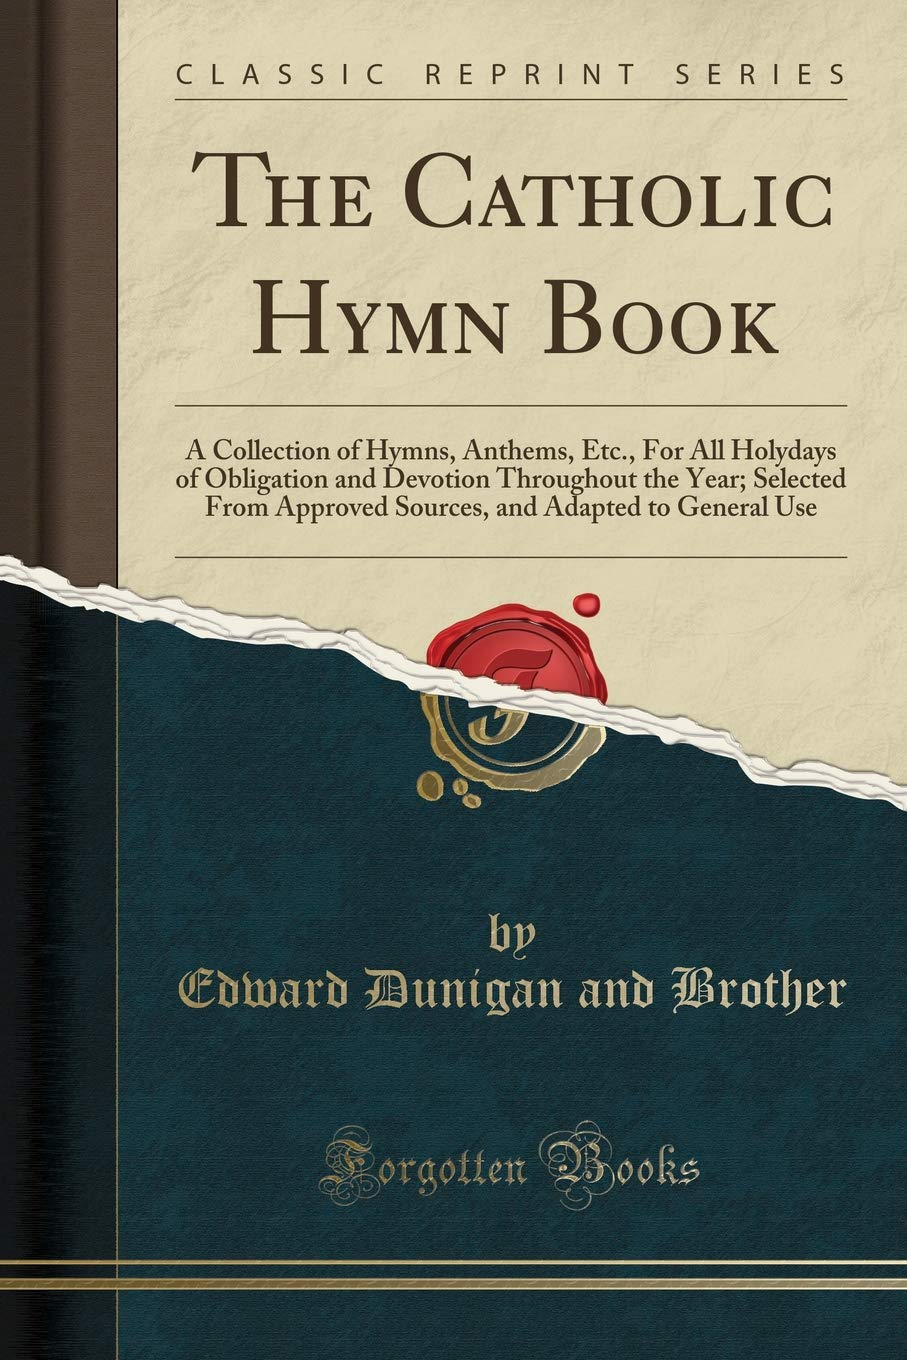 The Catholic Hymn Book: A Collection of Hymns, Anthems, Etc